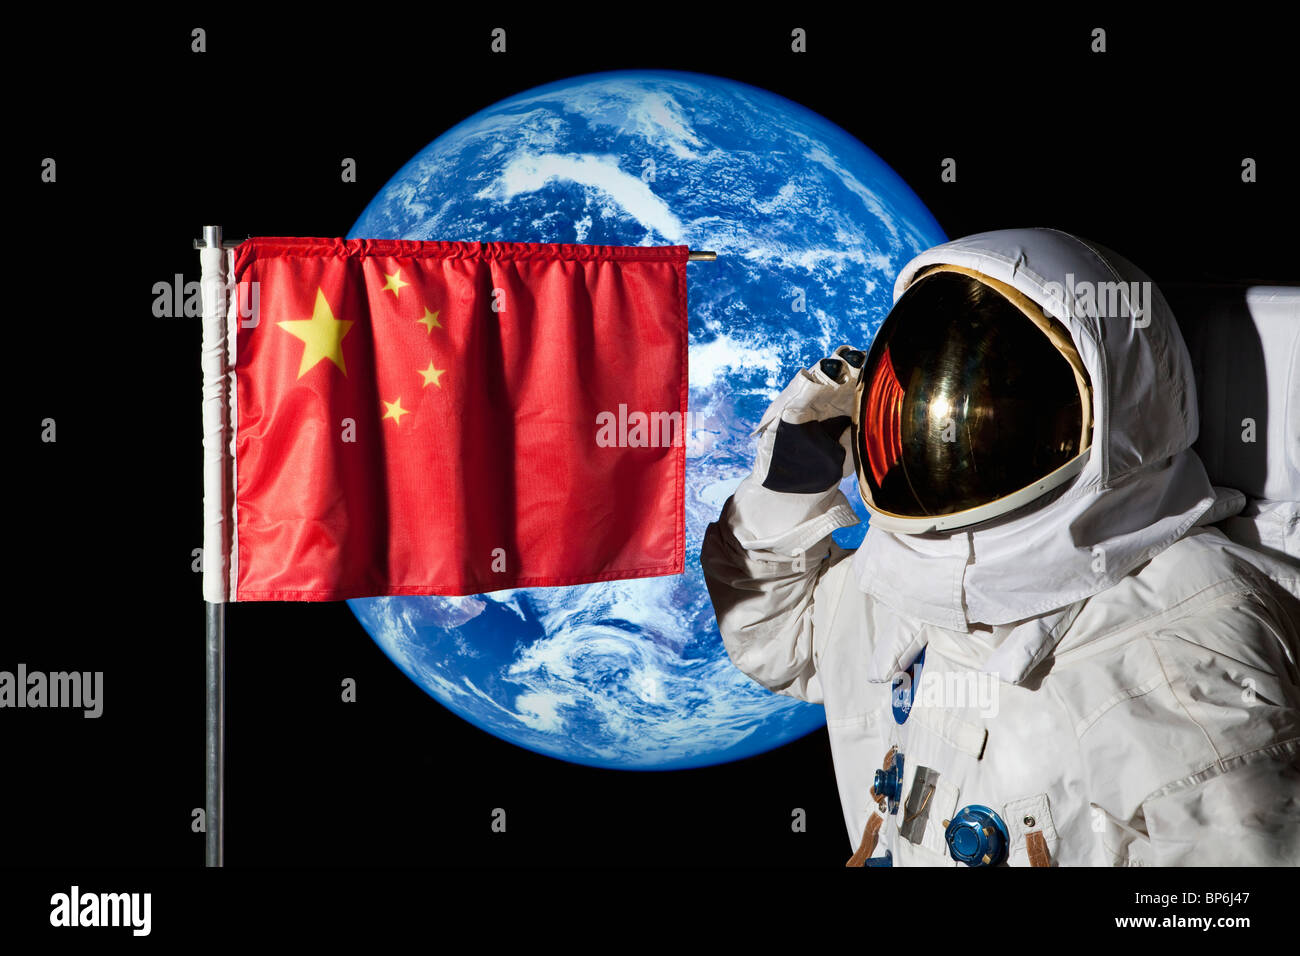 An astronaut saluting an Chinese flag with the earth in the background - Stock Image